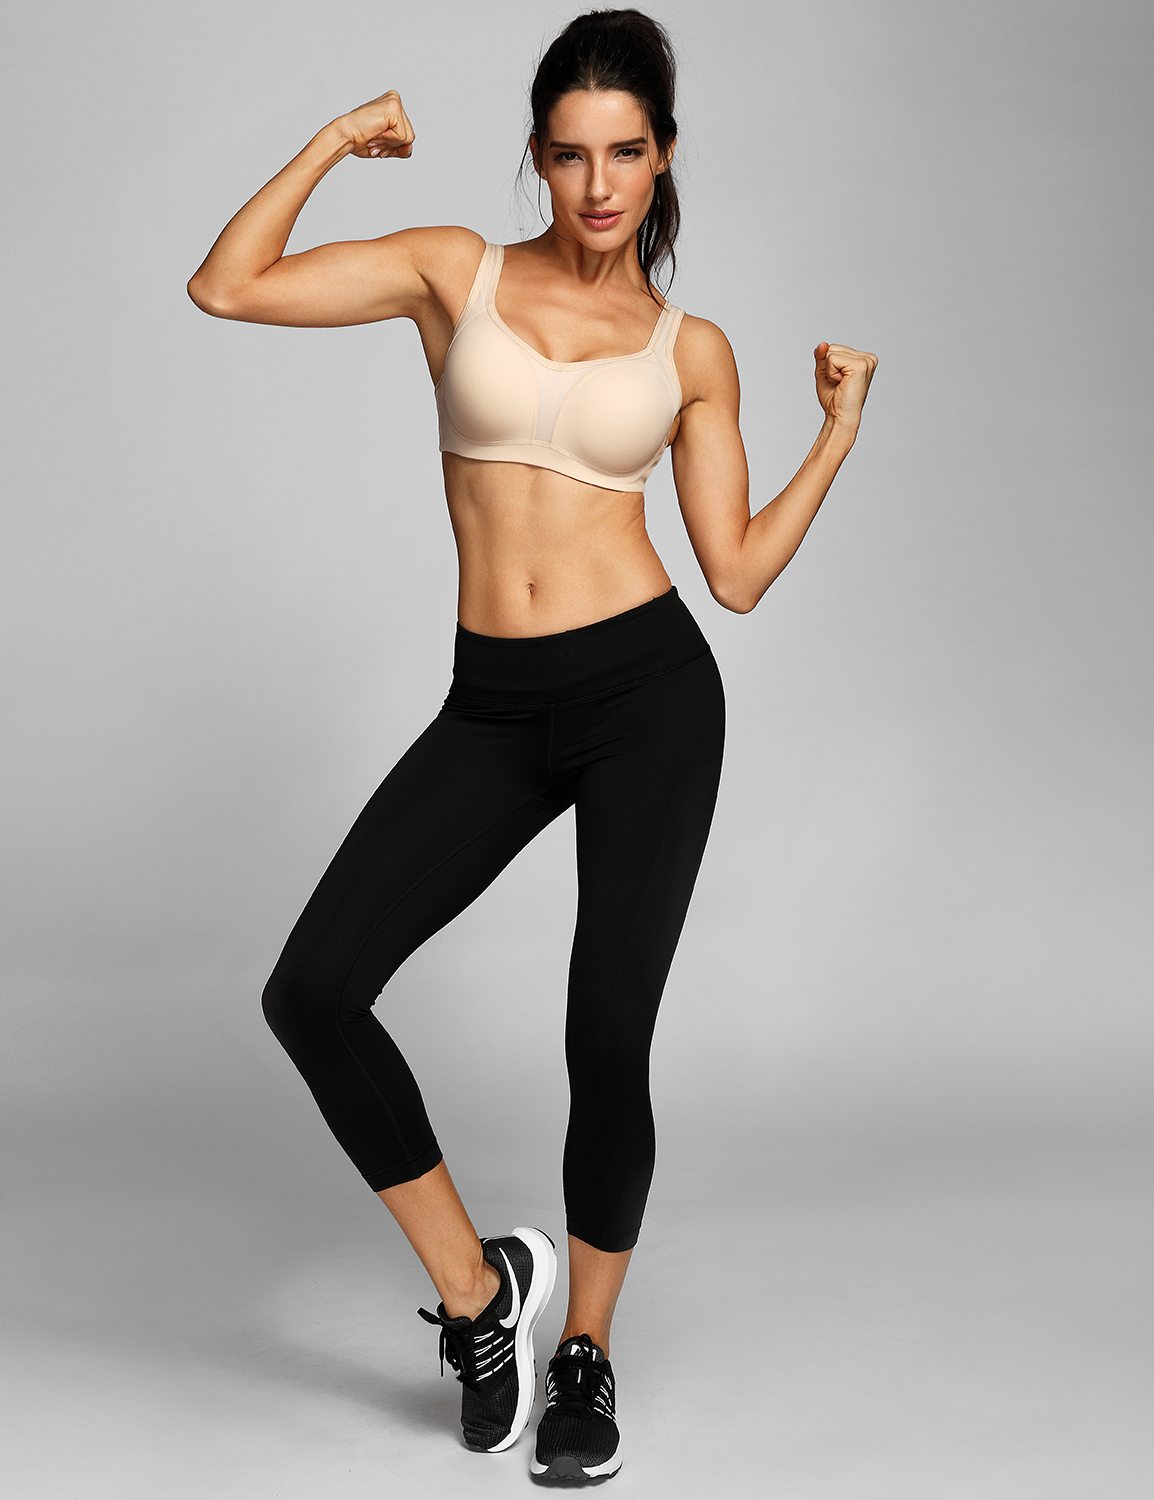 Women-039-s-Firm-Support-Contour-High-Impact-Underwire-Sports-Bra thumbnail 18